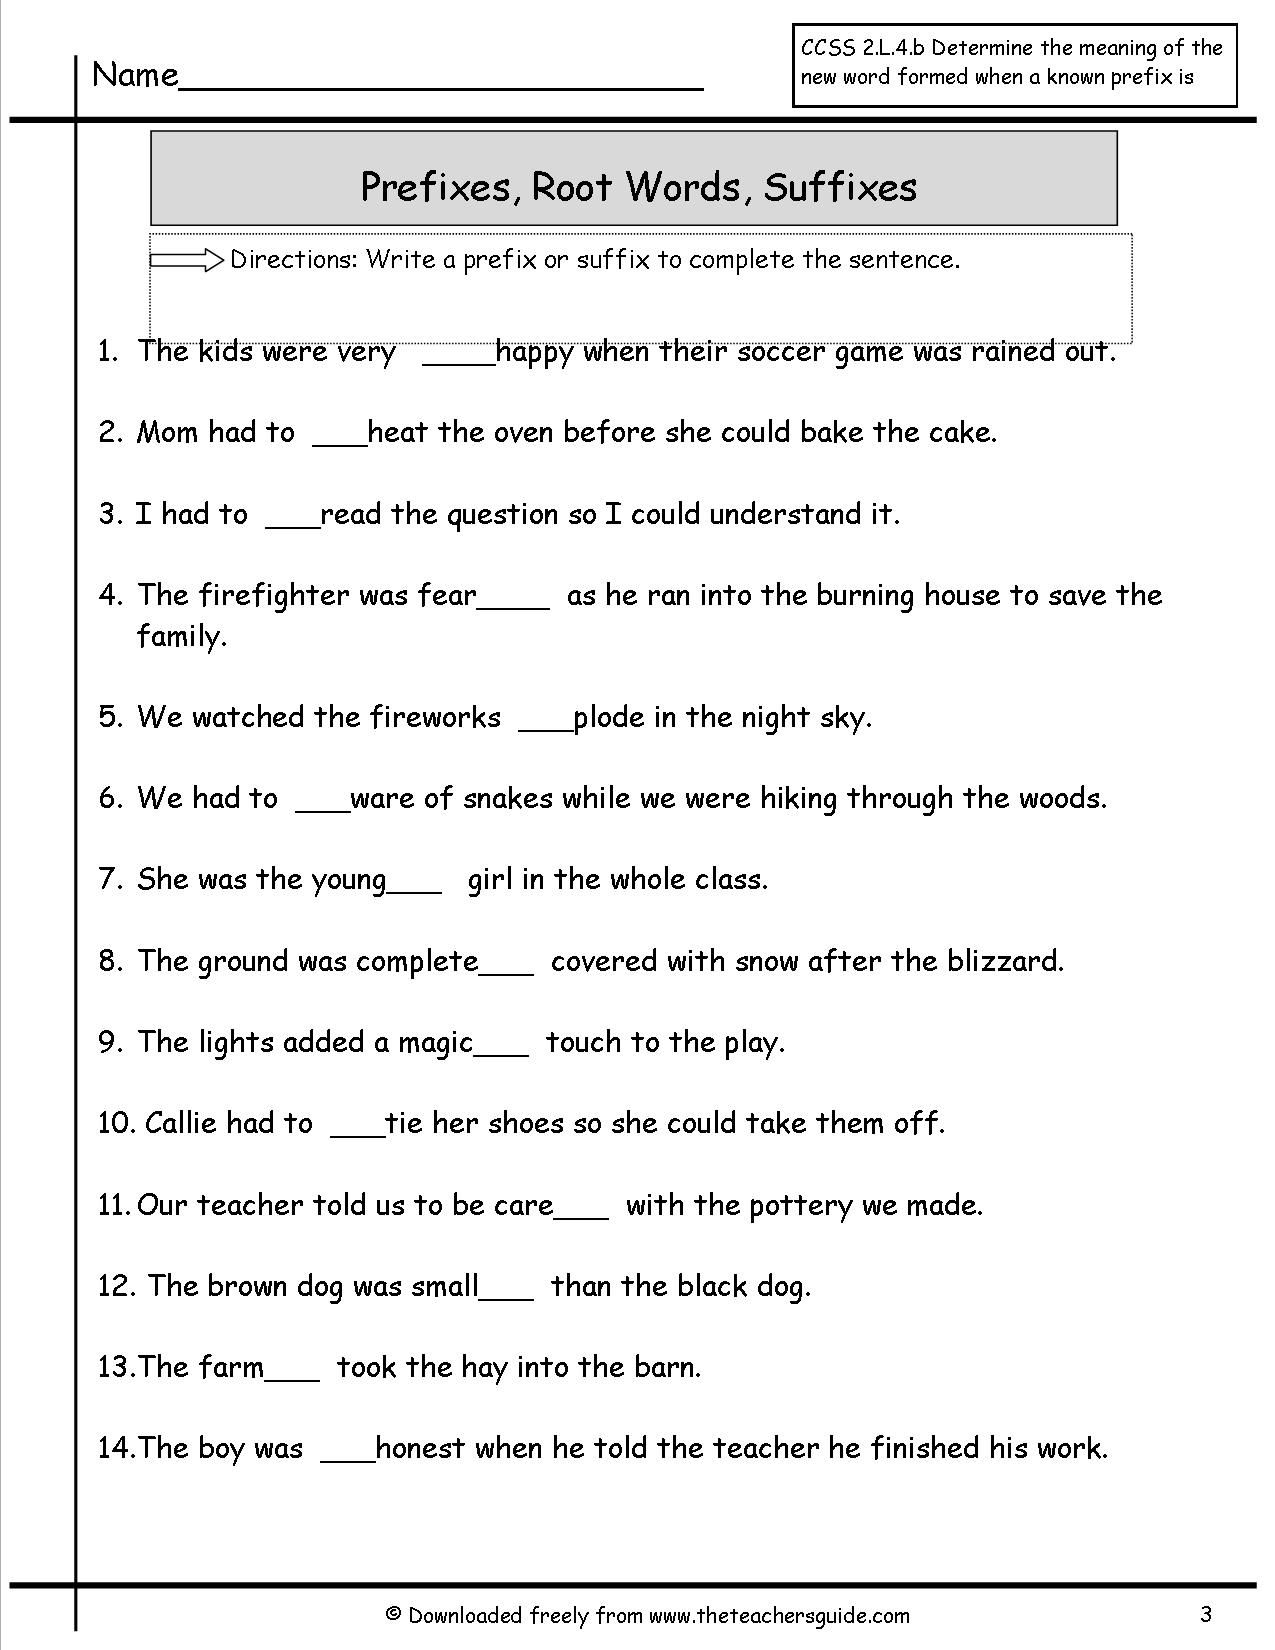 Prefixes Suffixes Worksheet